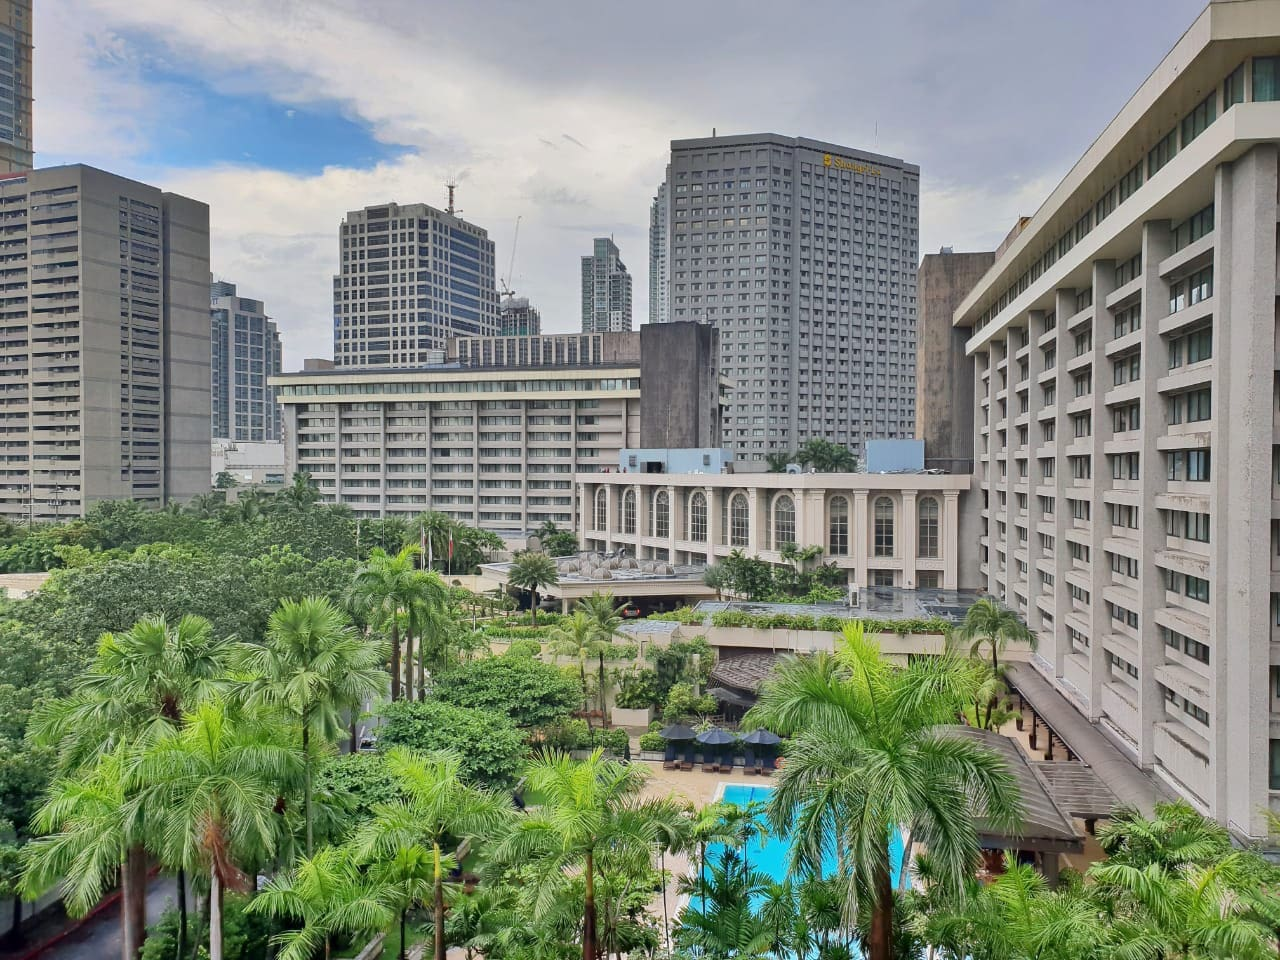 This is YOUR VIEW from the Condominium Unit overlooking the buildings in Makati (not the condo pool)